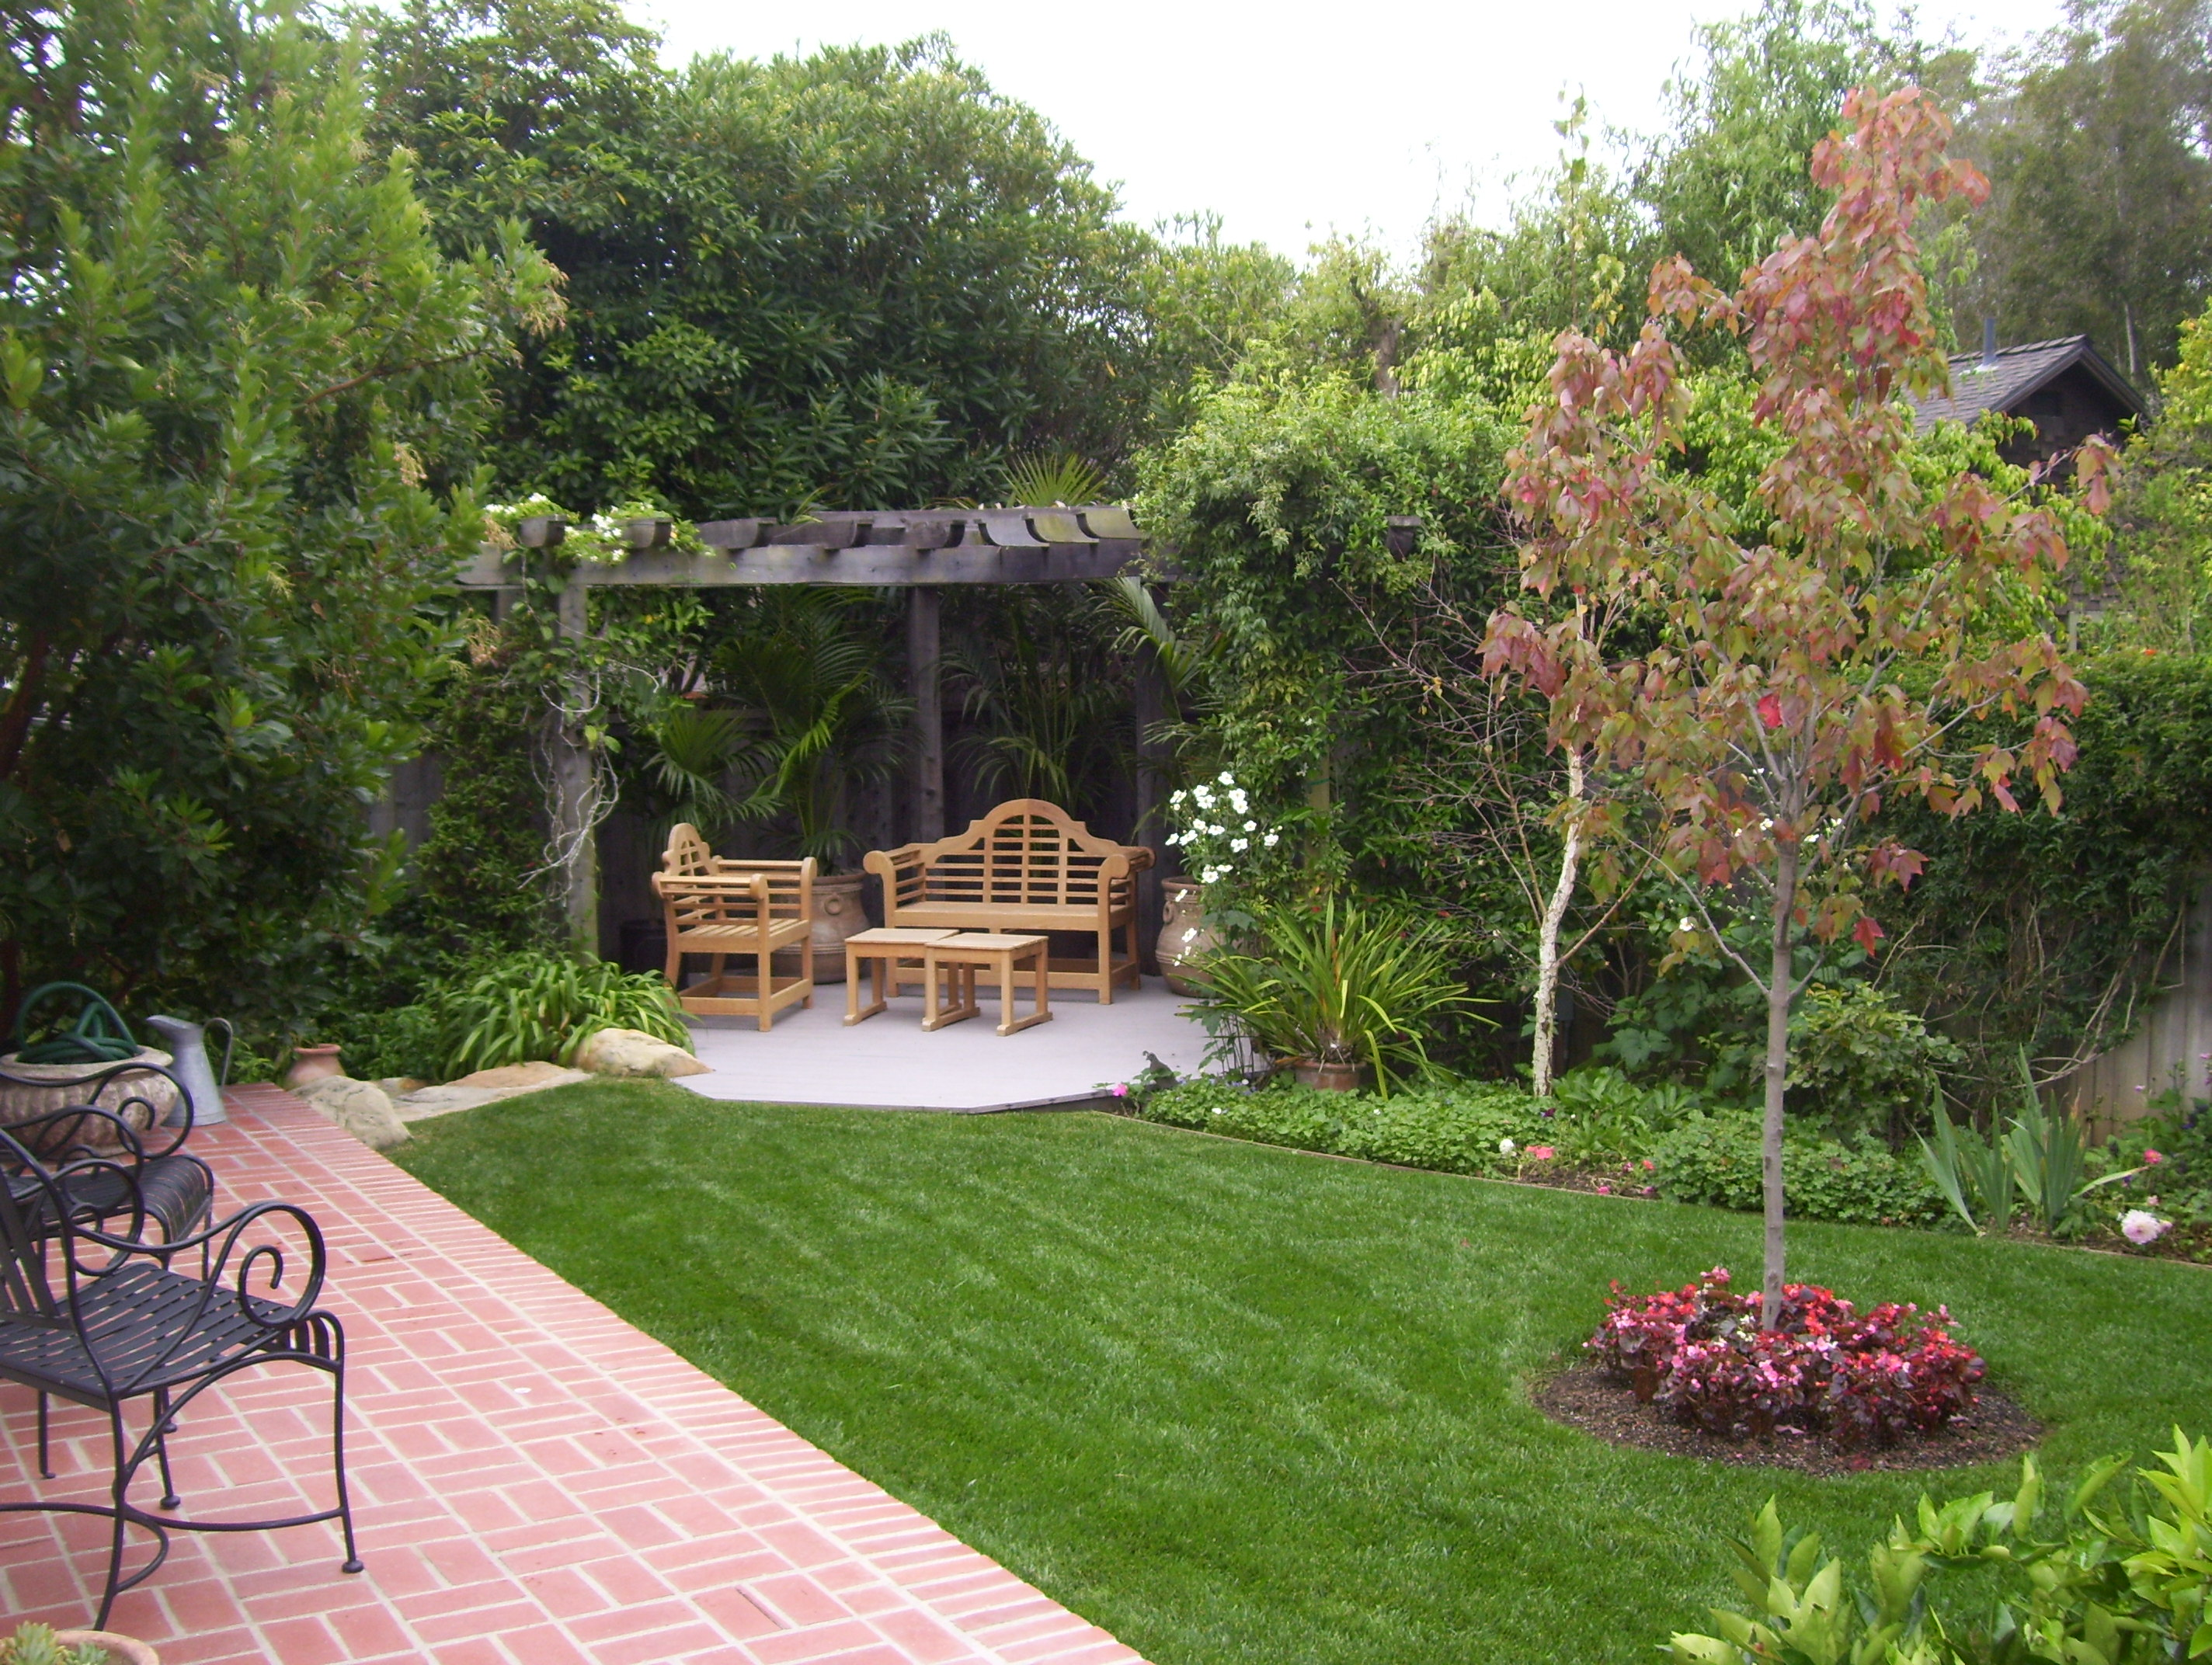 Santa barbara lawn and garden maintenenace landscape for Backyard garden plans